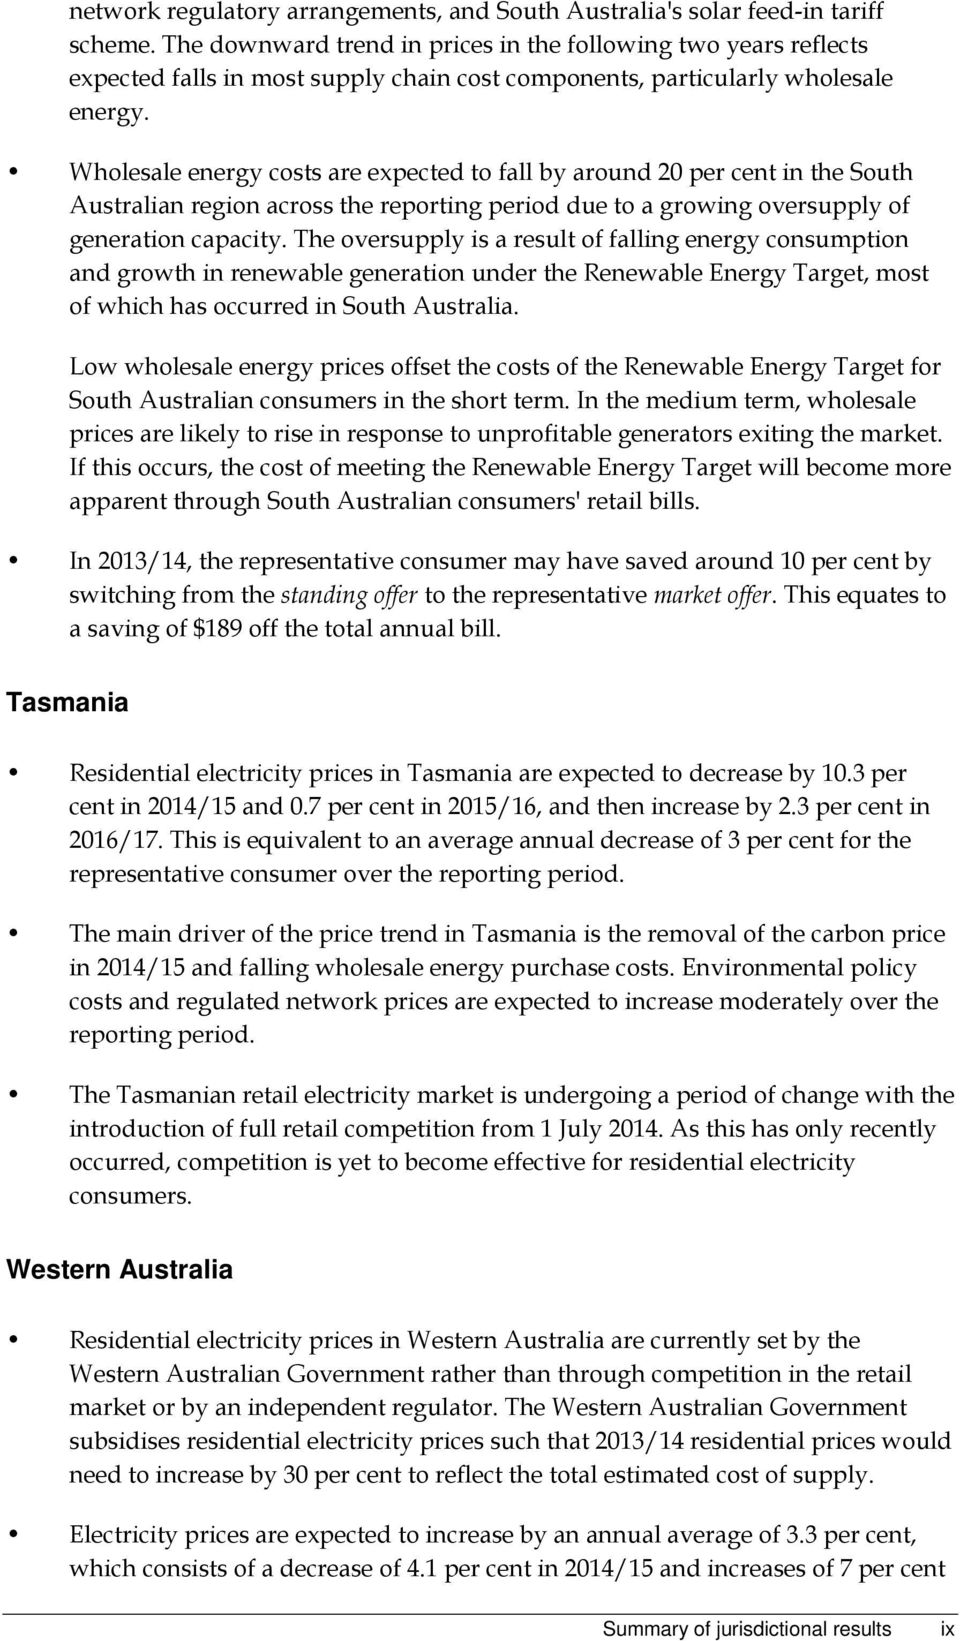 Wholesale energy costs are expected to fall by around 20 per cent in the South Australian region across the reporting period due to a growing oversupply of generation capacity.